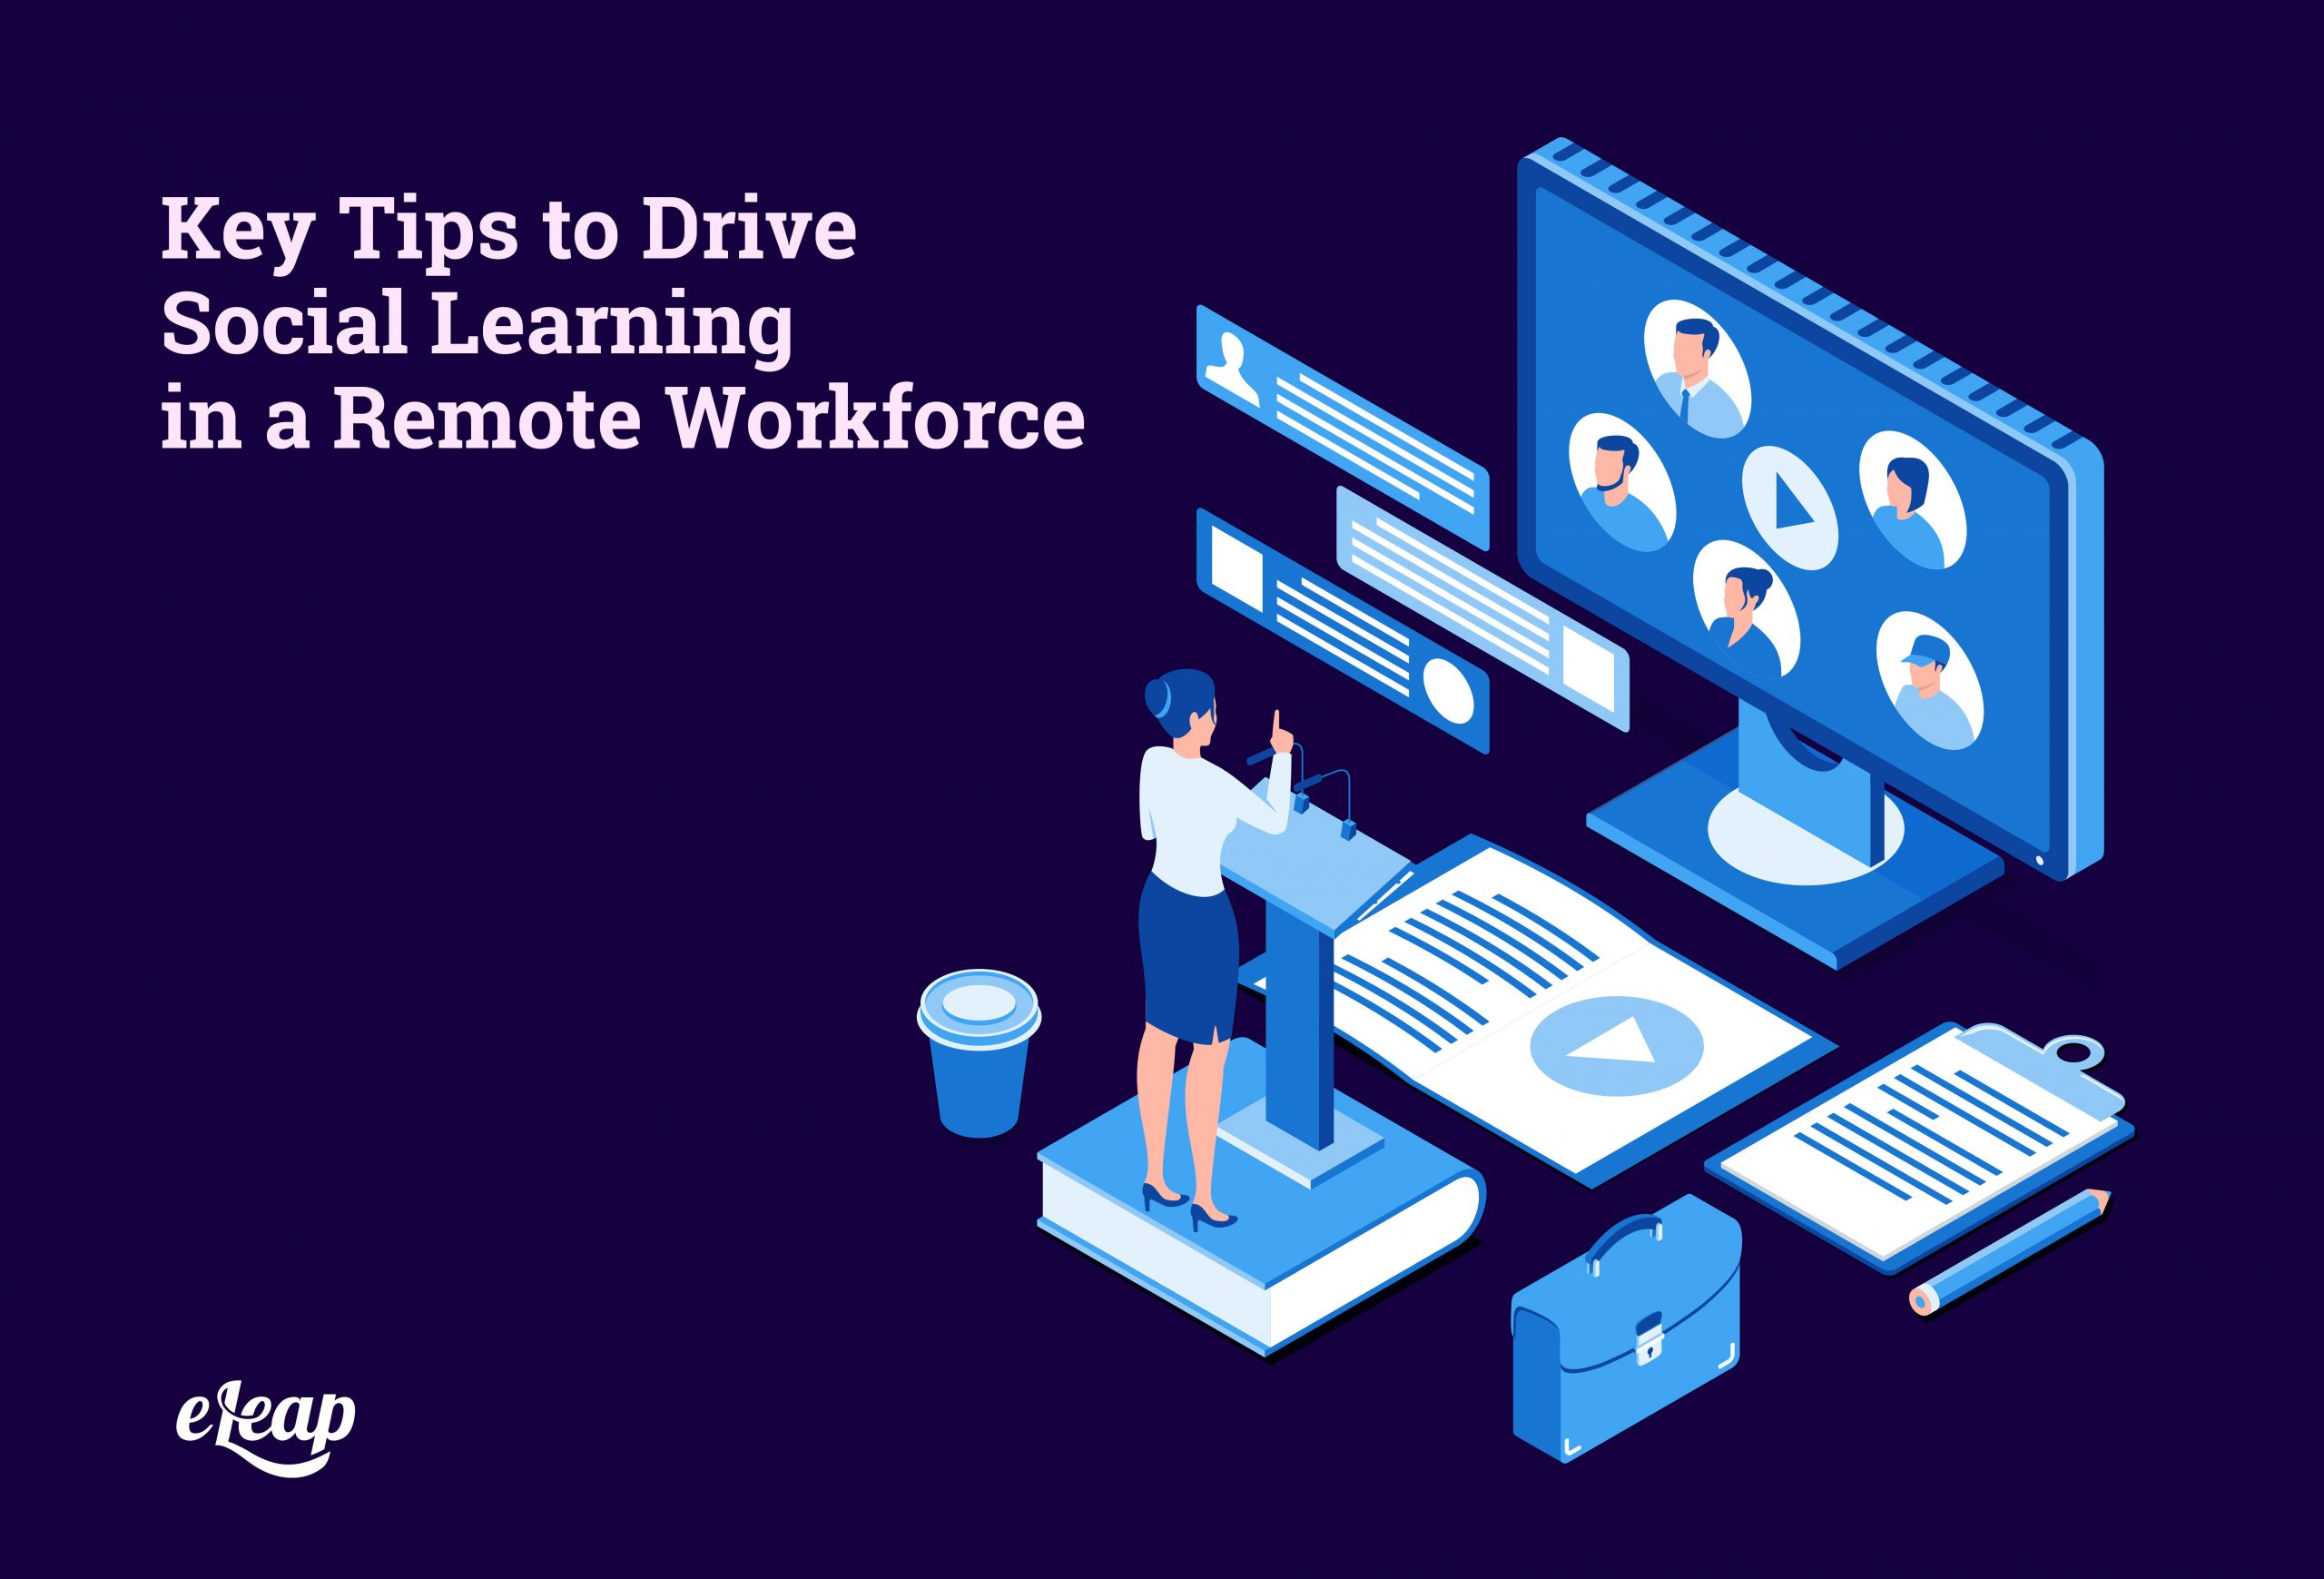 Key Tips to Drive Social Learning in a Remote Workforce